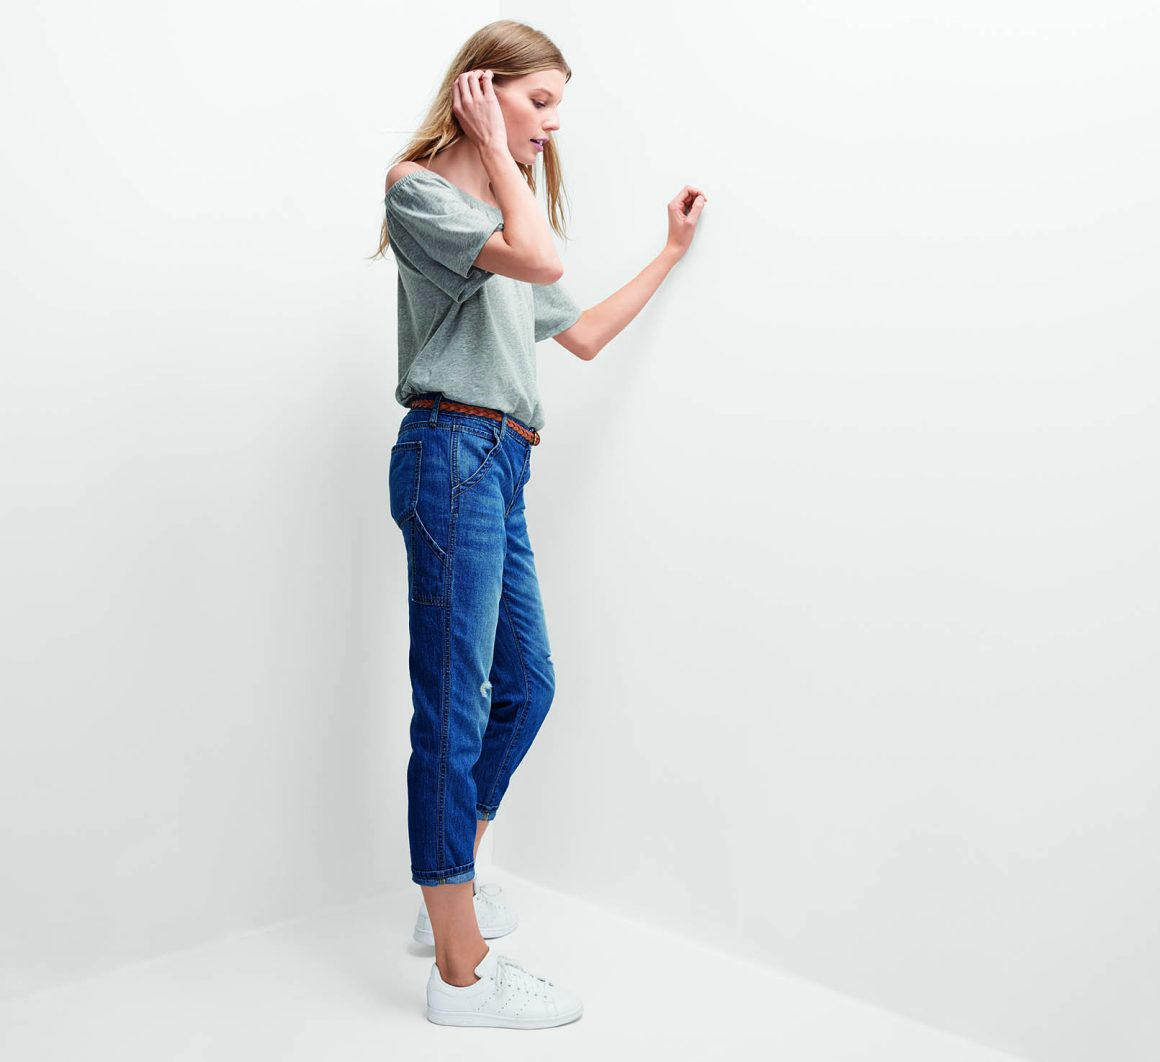 ALL JEANS 40% OFF AT GAP